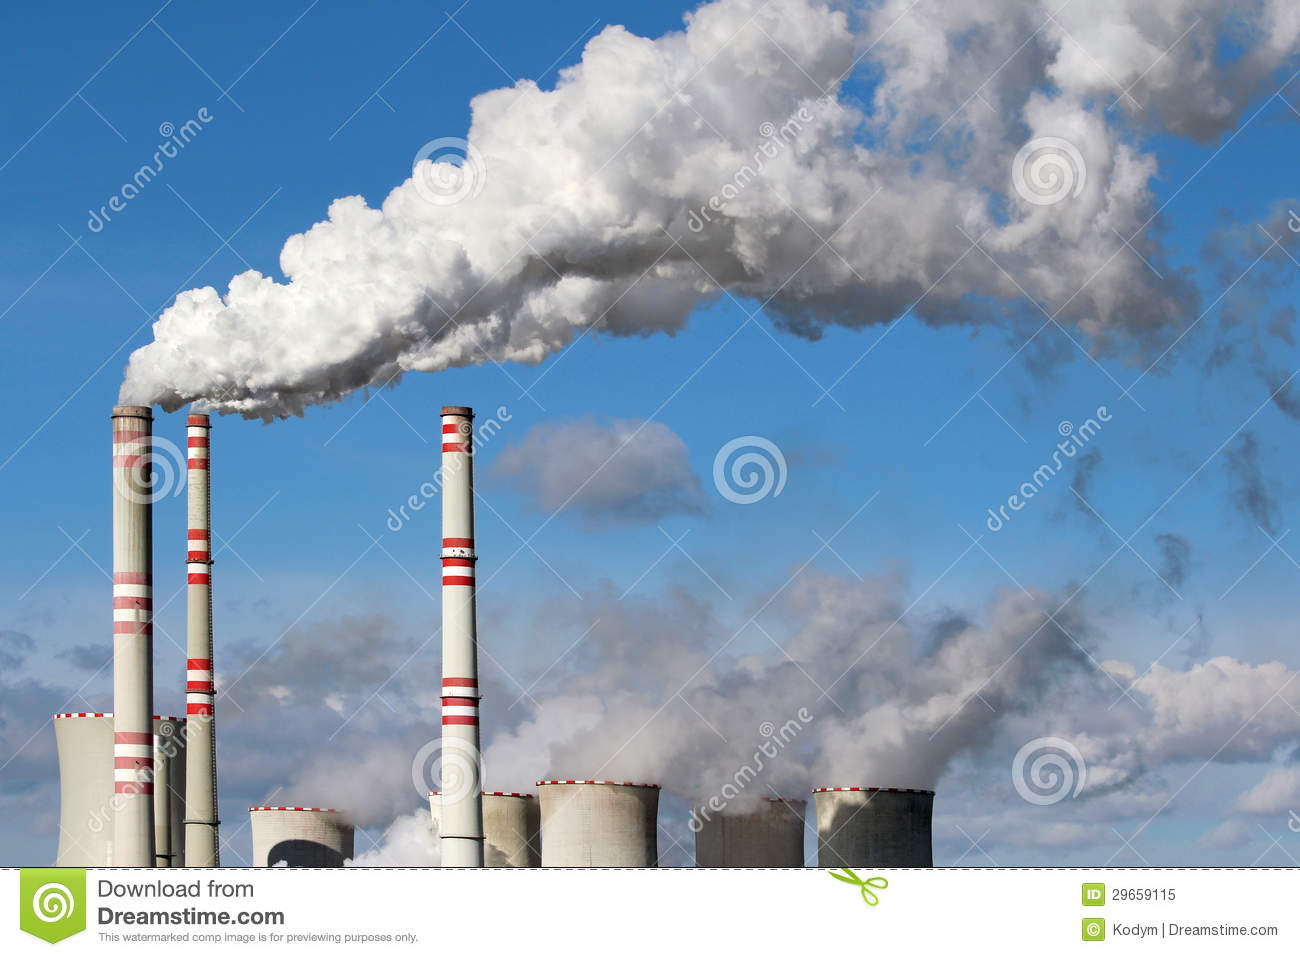 Pollution Cheminées Danger Smoke From Coal Power Plant Chimney Stock Image